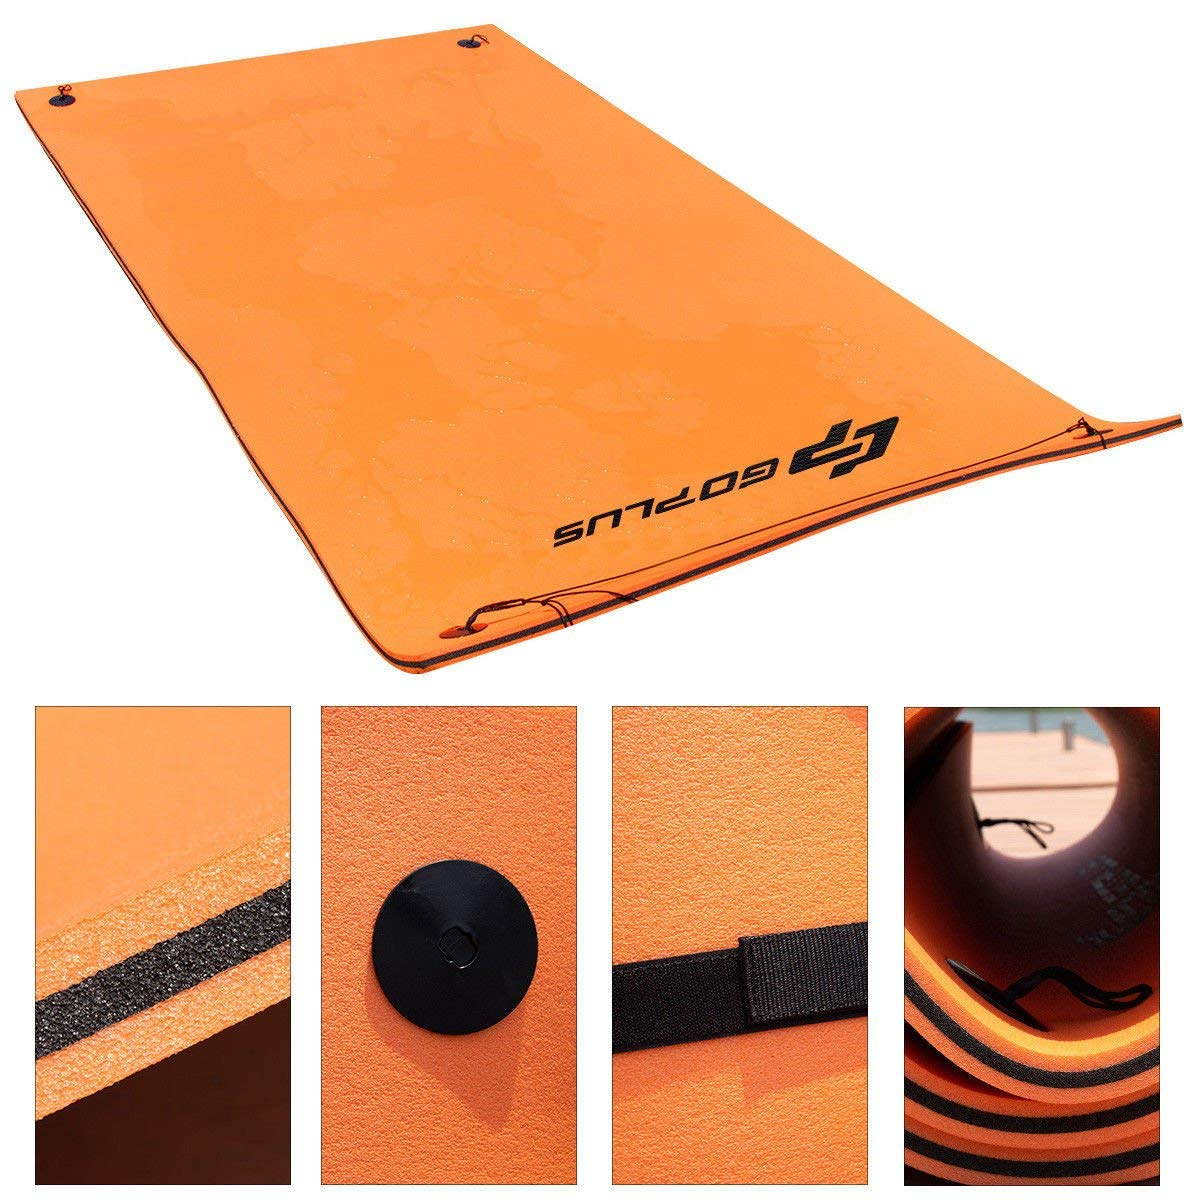 Goplus 12' x 6' Floating Water Pad for Lakes 3 Layer Floating Foam Mat Aqua Buoyancy Pad Designed for Water Recreation and Relaxing (Orange + Black) by Goplus (Image #6)